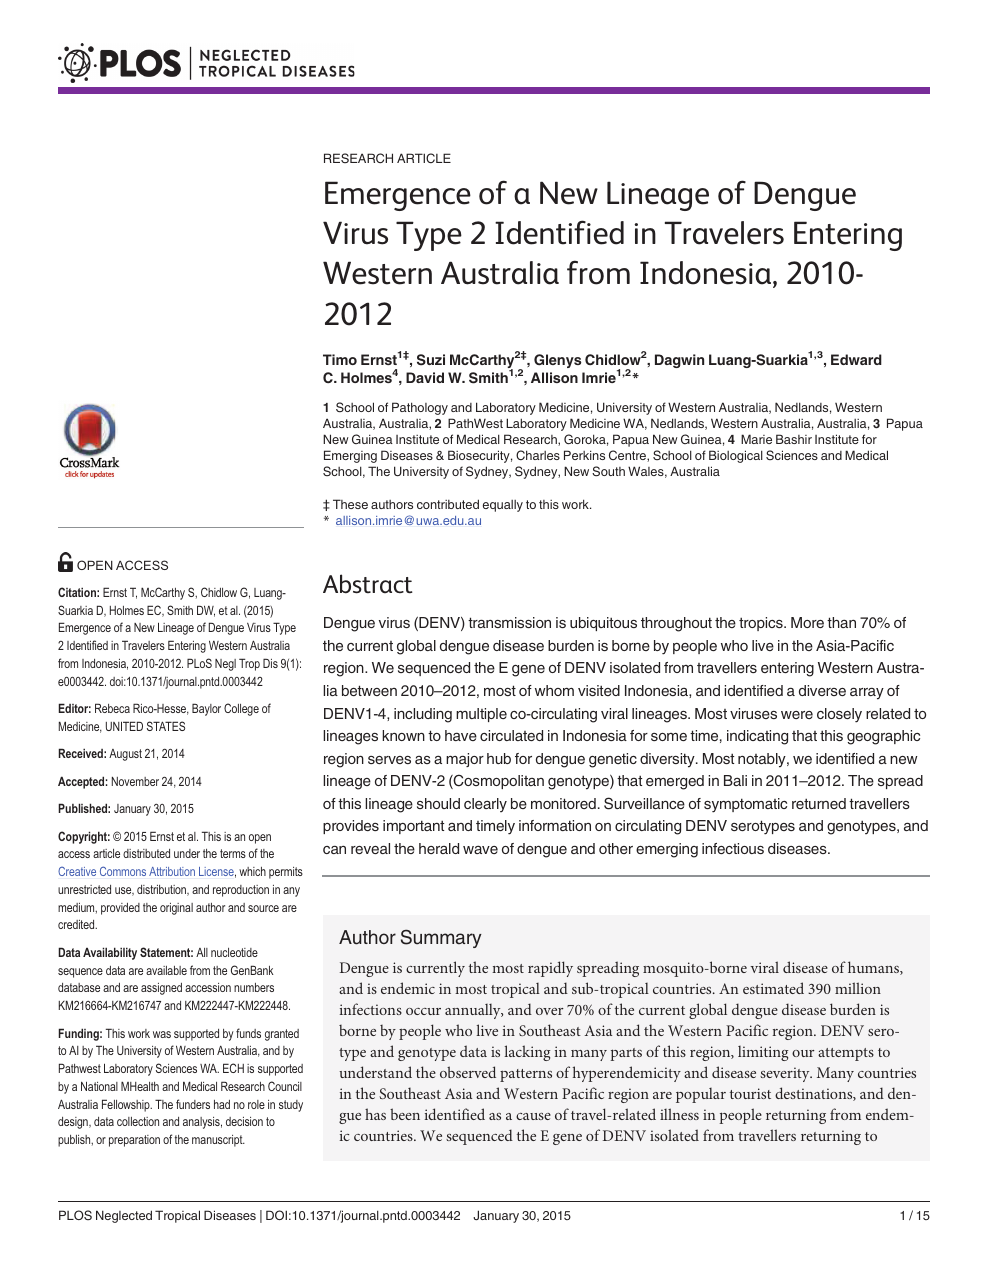 Emergence of a New Lineage of Dengue Virus Type 2 Identified